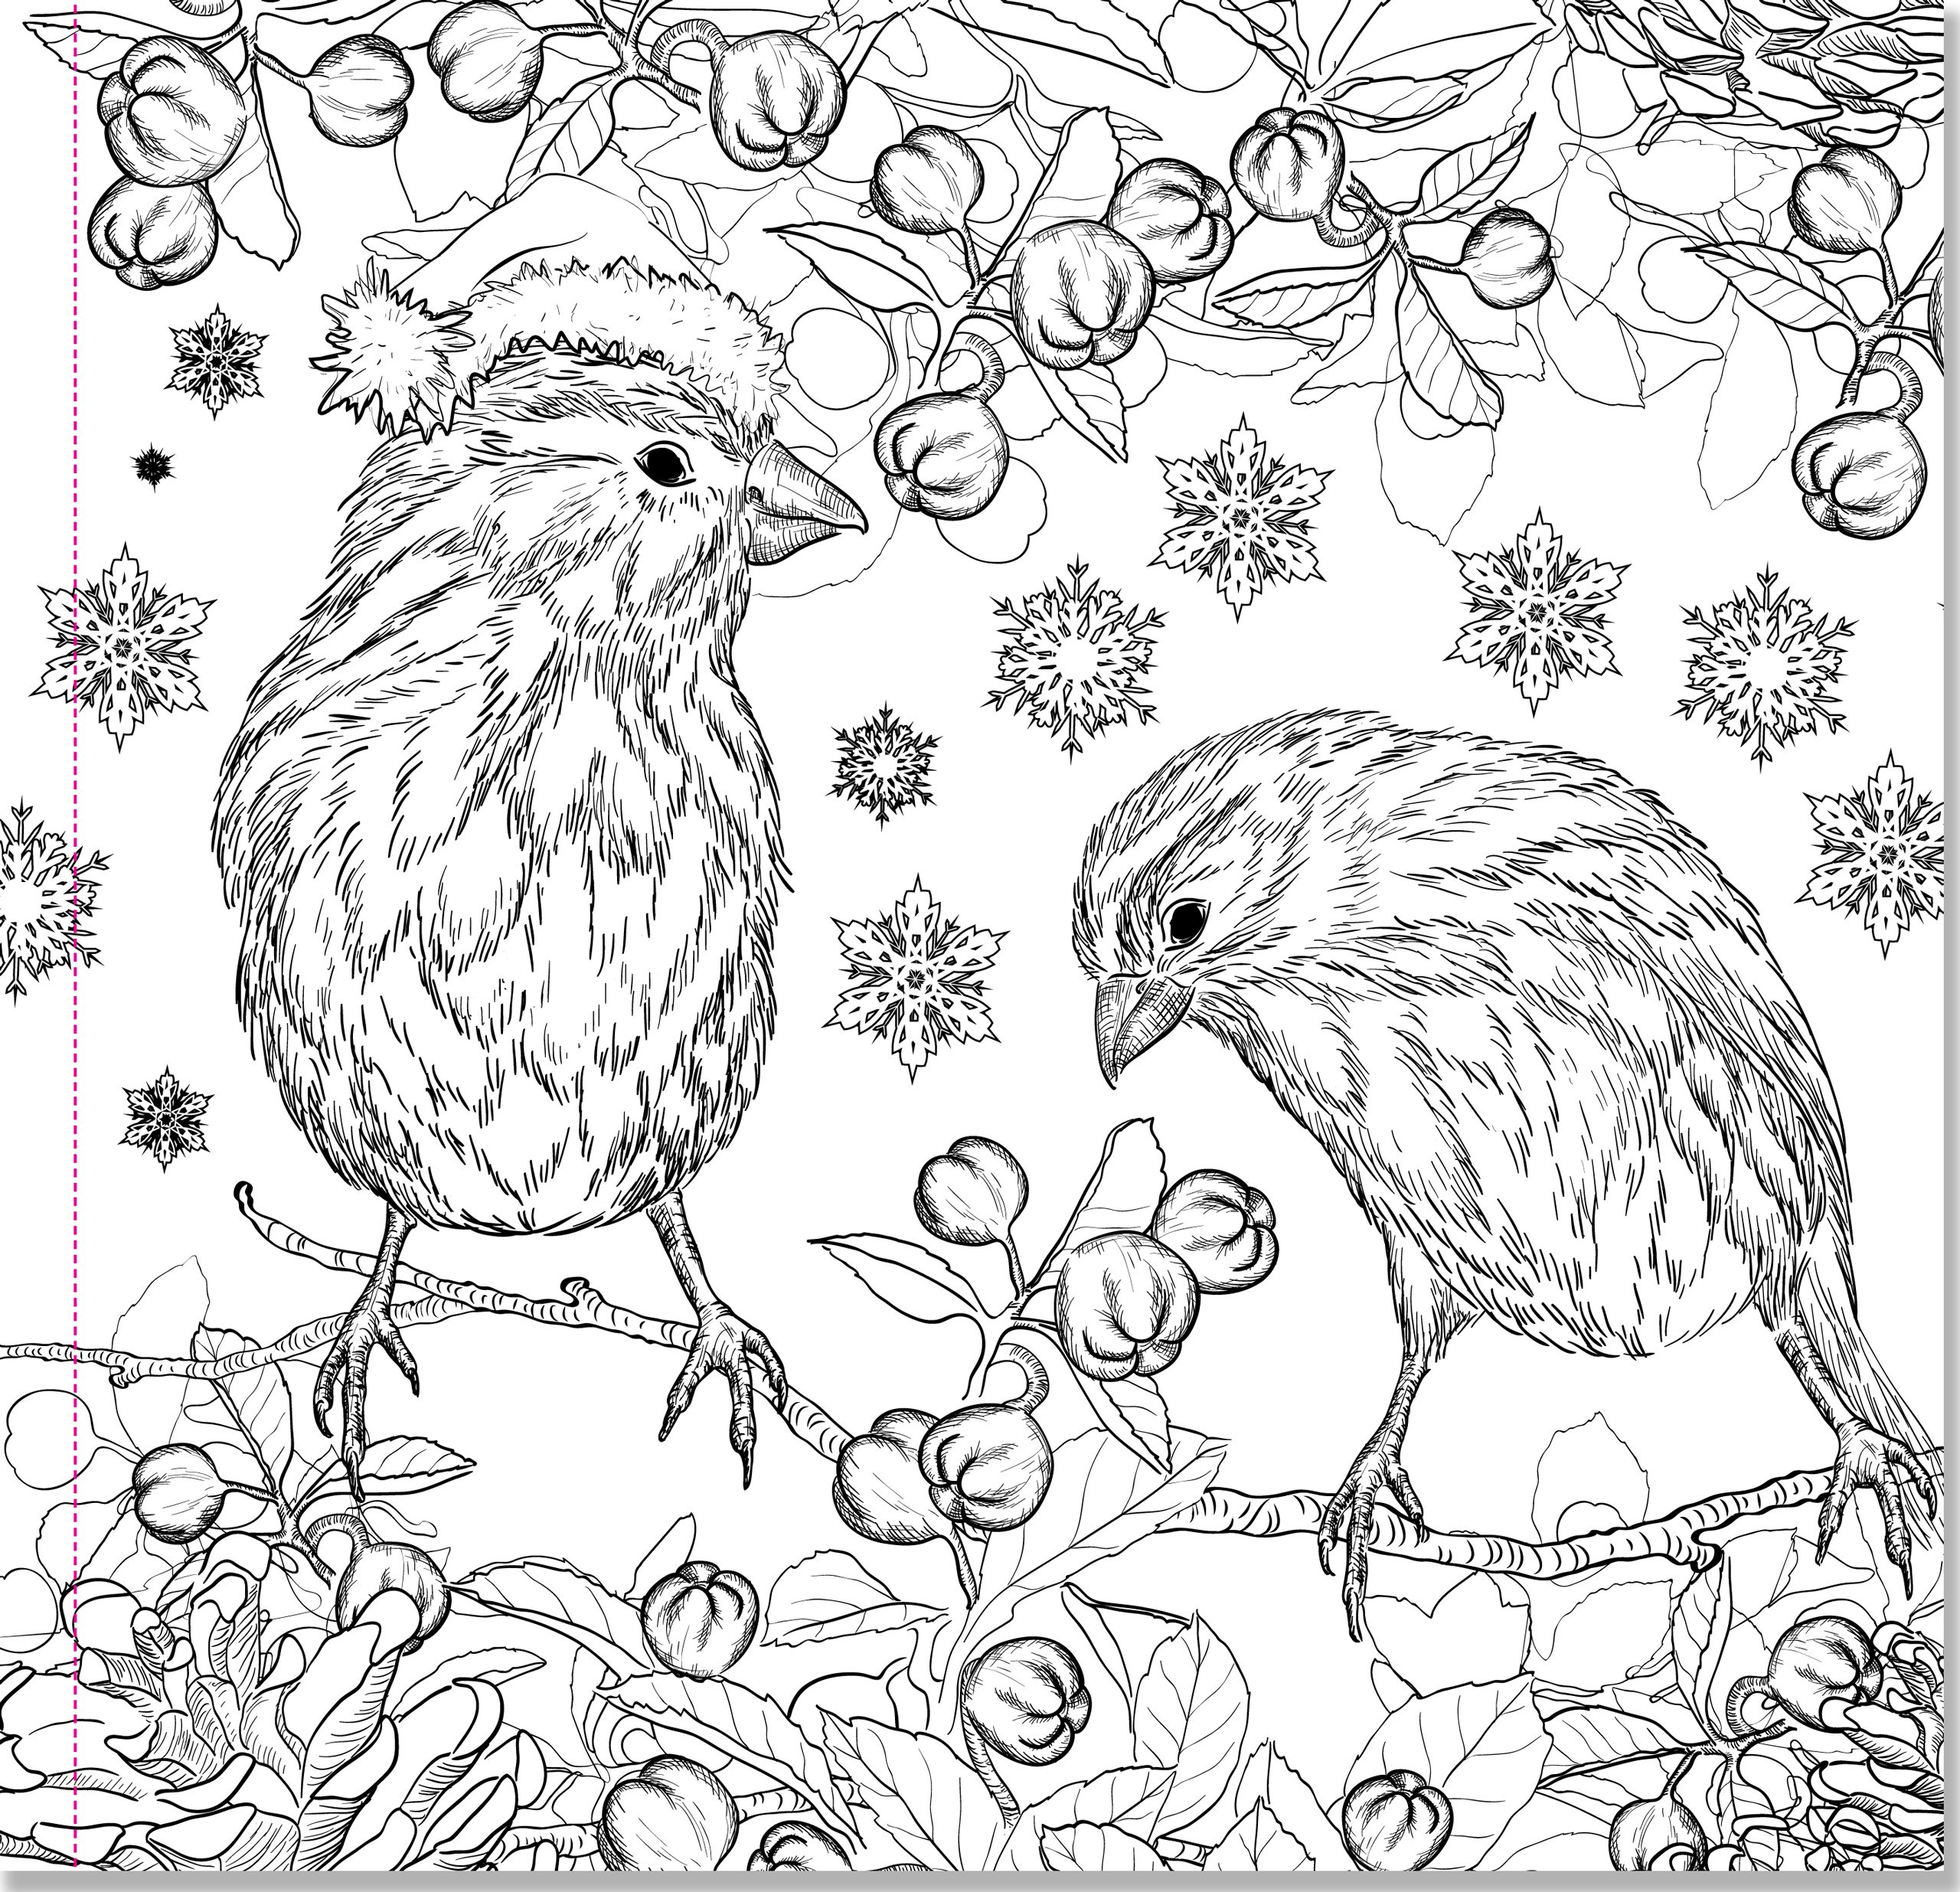 Whimsical designs coloring book - Amazon Com Christmas Designs Adult Coloring Book 31 Stress Relieving Designs Studio 9781441319326 Peter Pauper Press Books